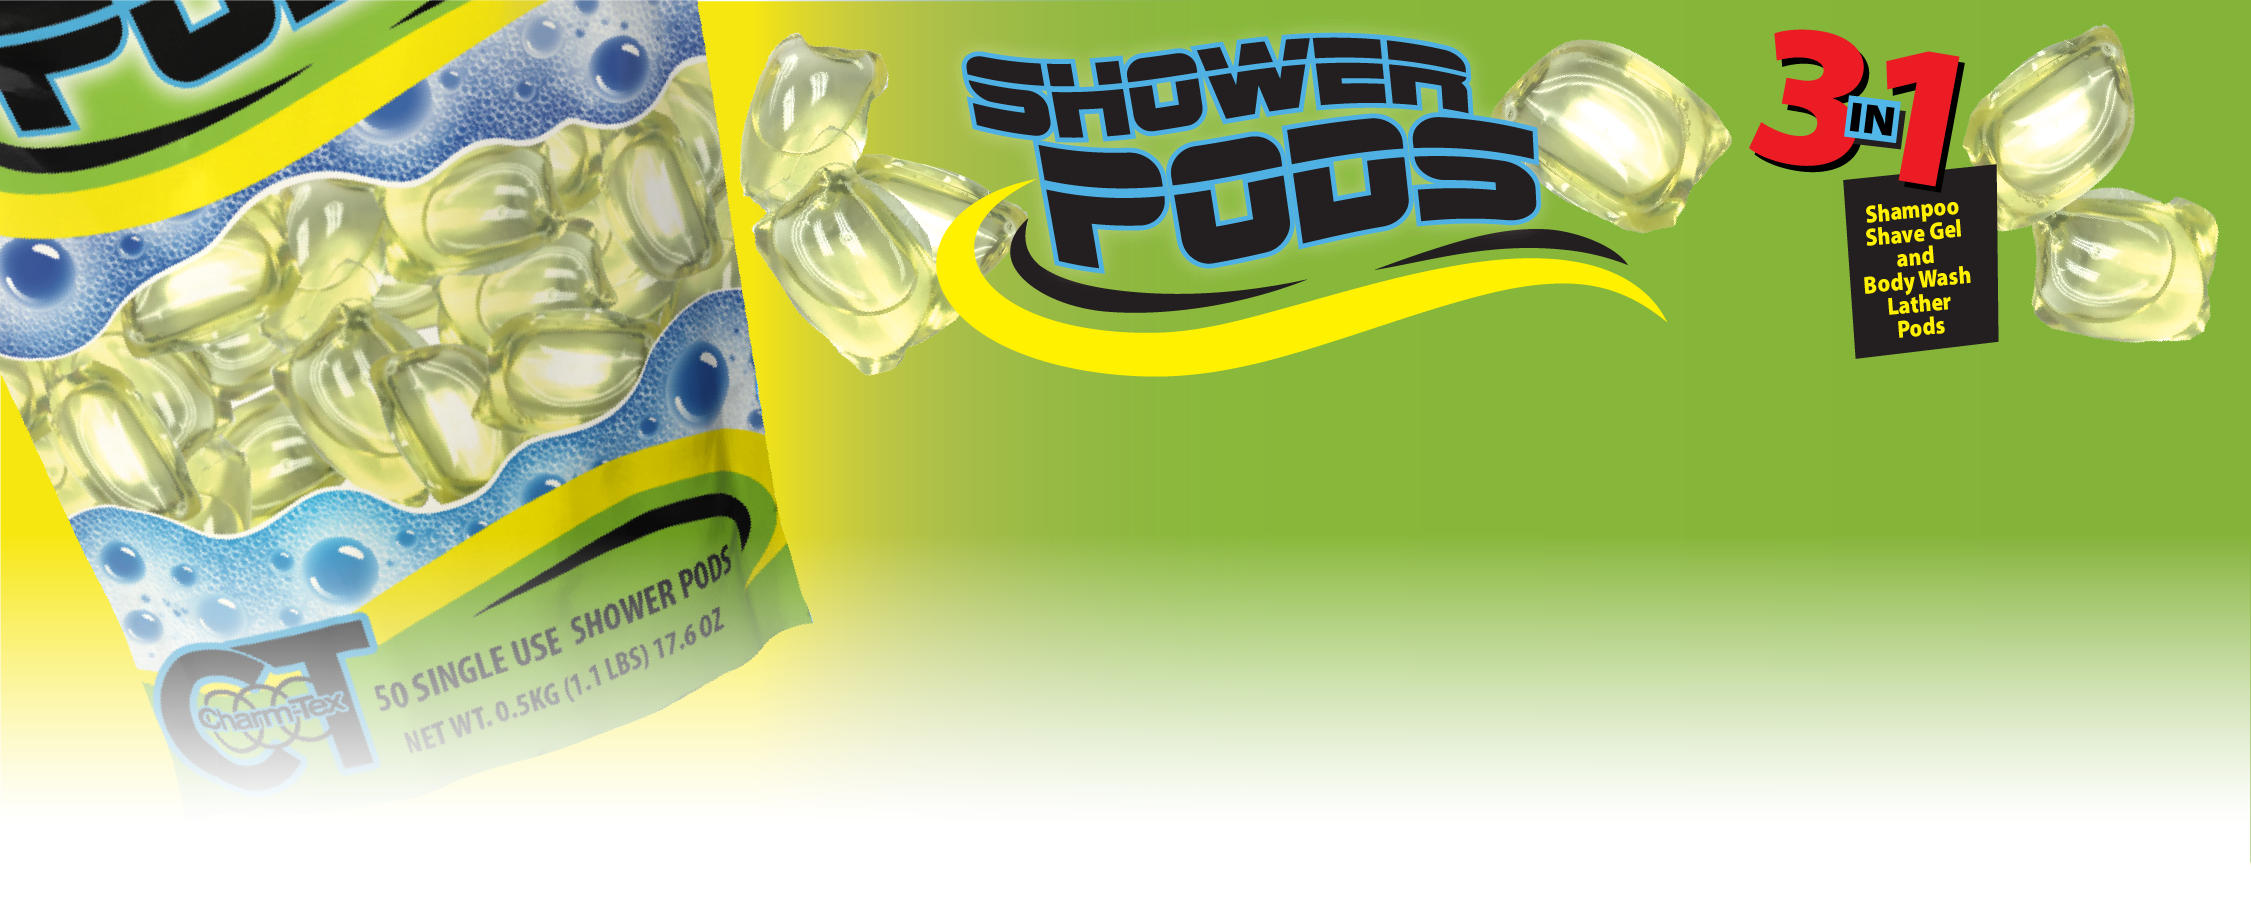 Shower Pods